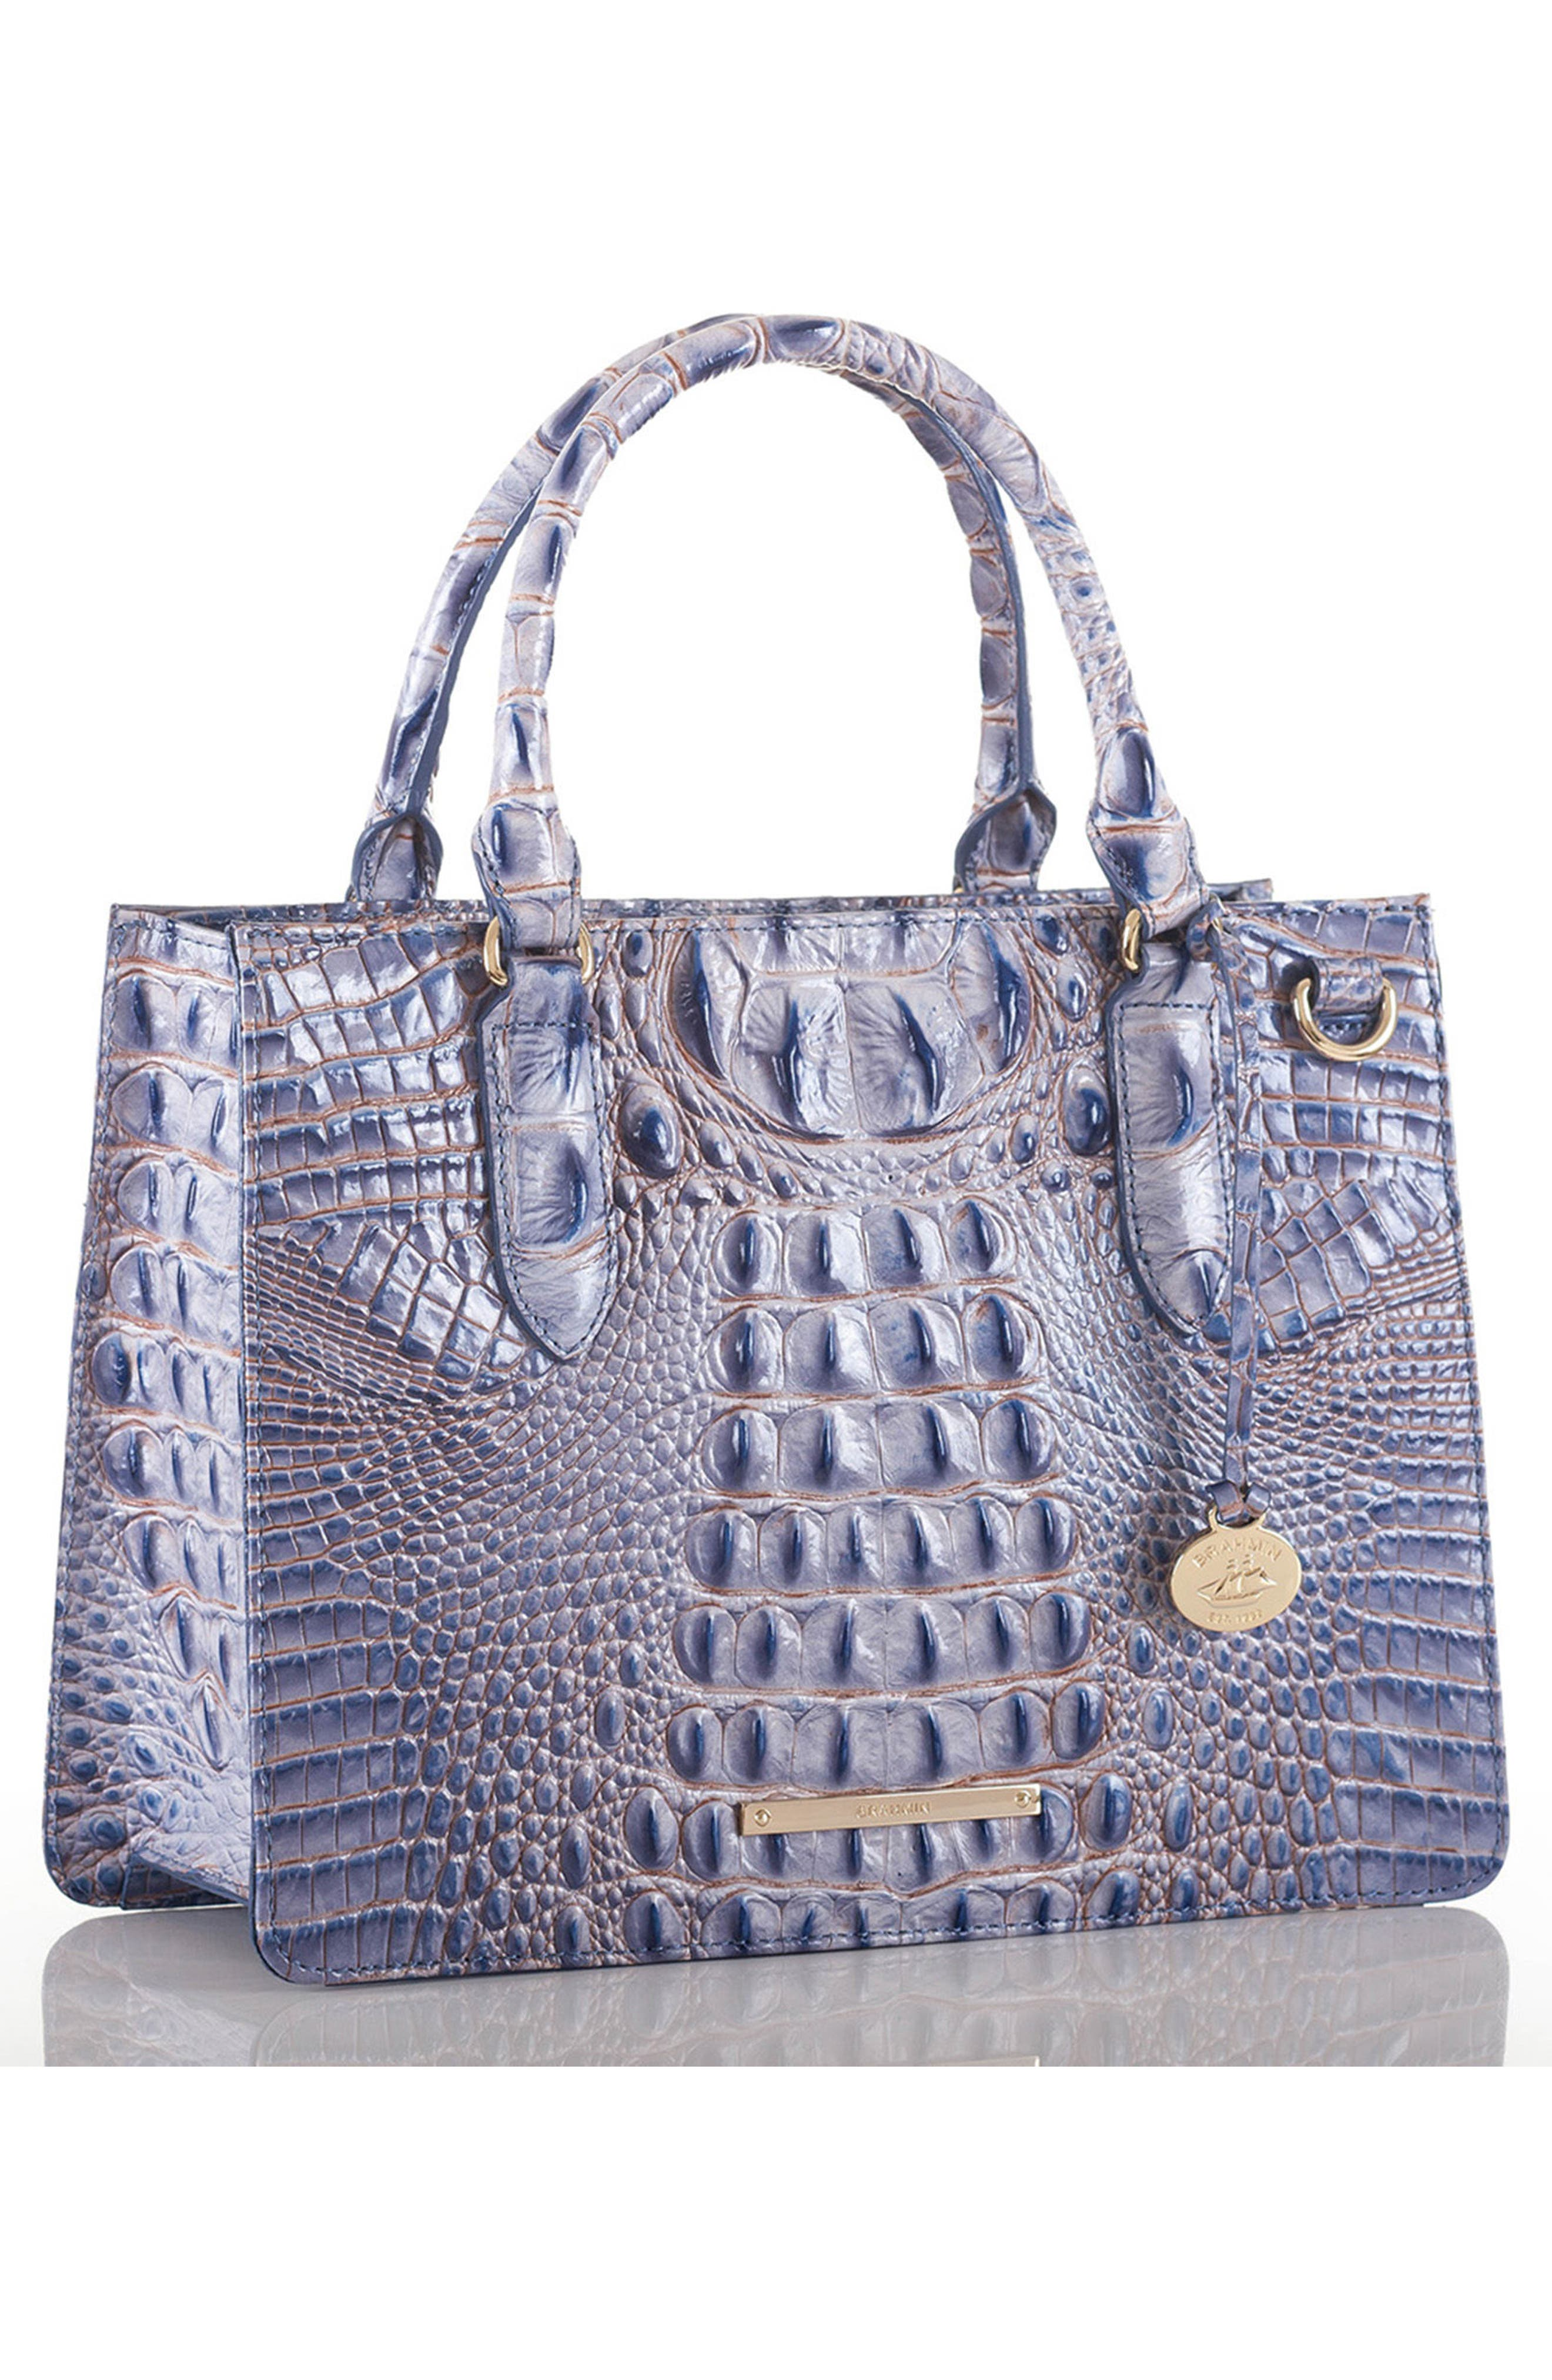 BRAHMIN,                             Small Camille Embossed Leather Satchel,                             Alternate thumbnail 4, color,                             437